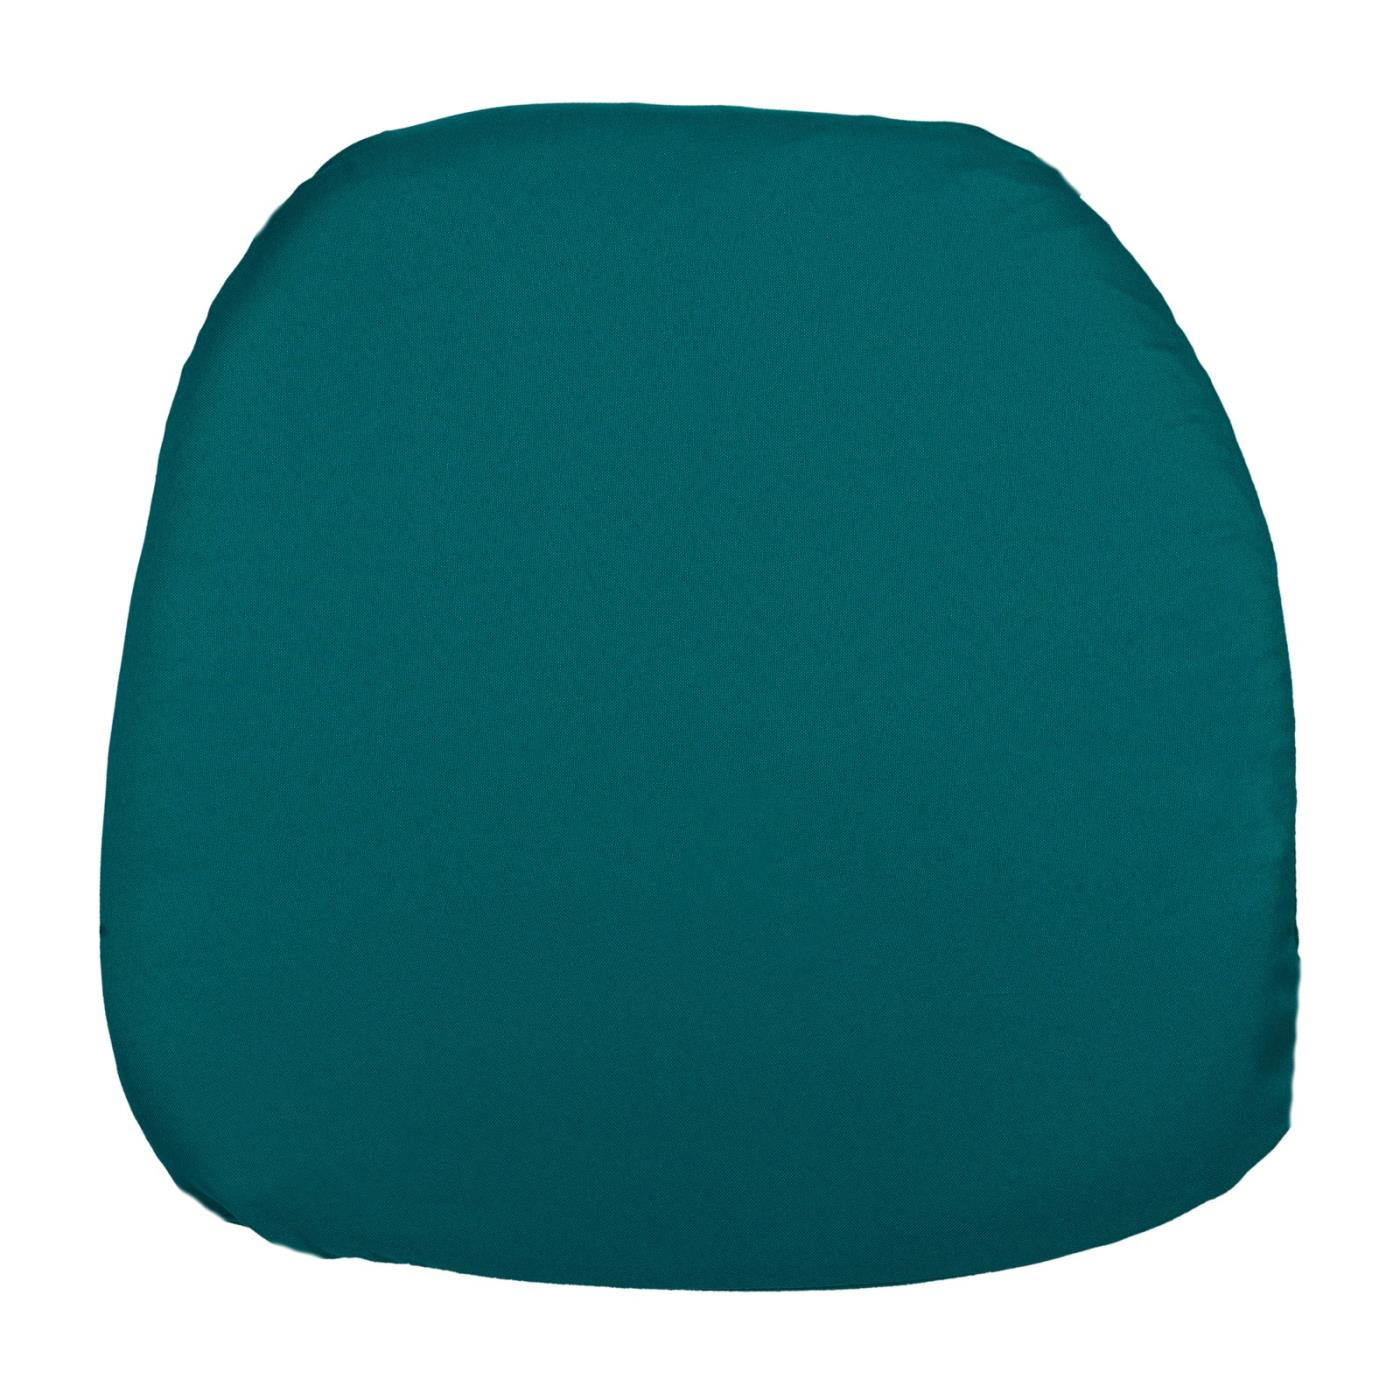 Poly Seat Cushion - Teal